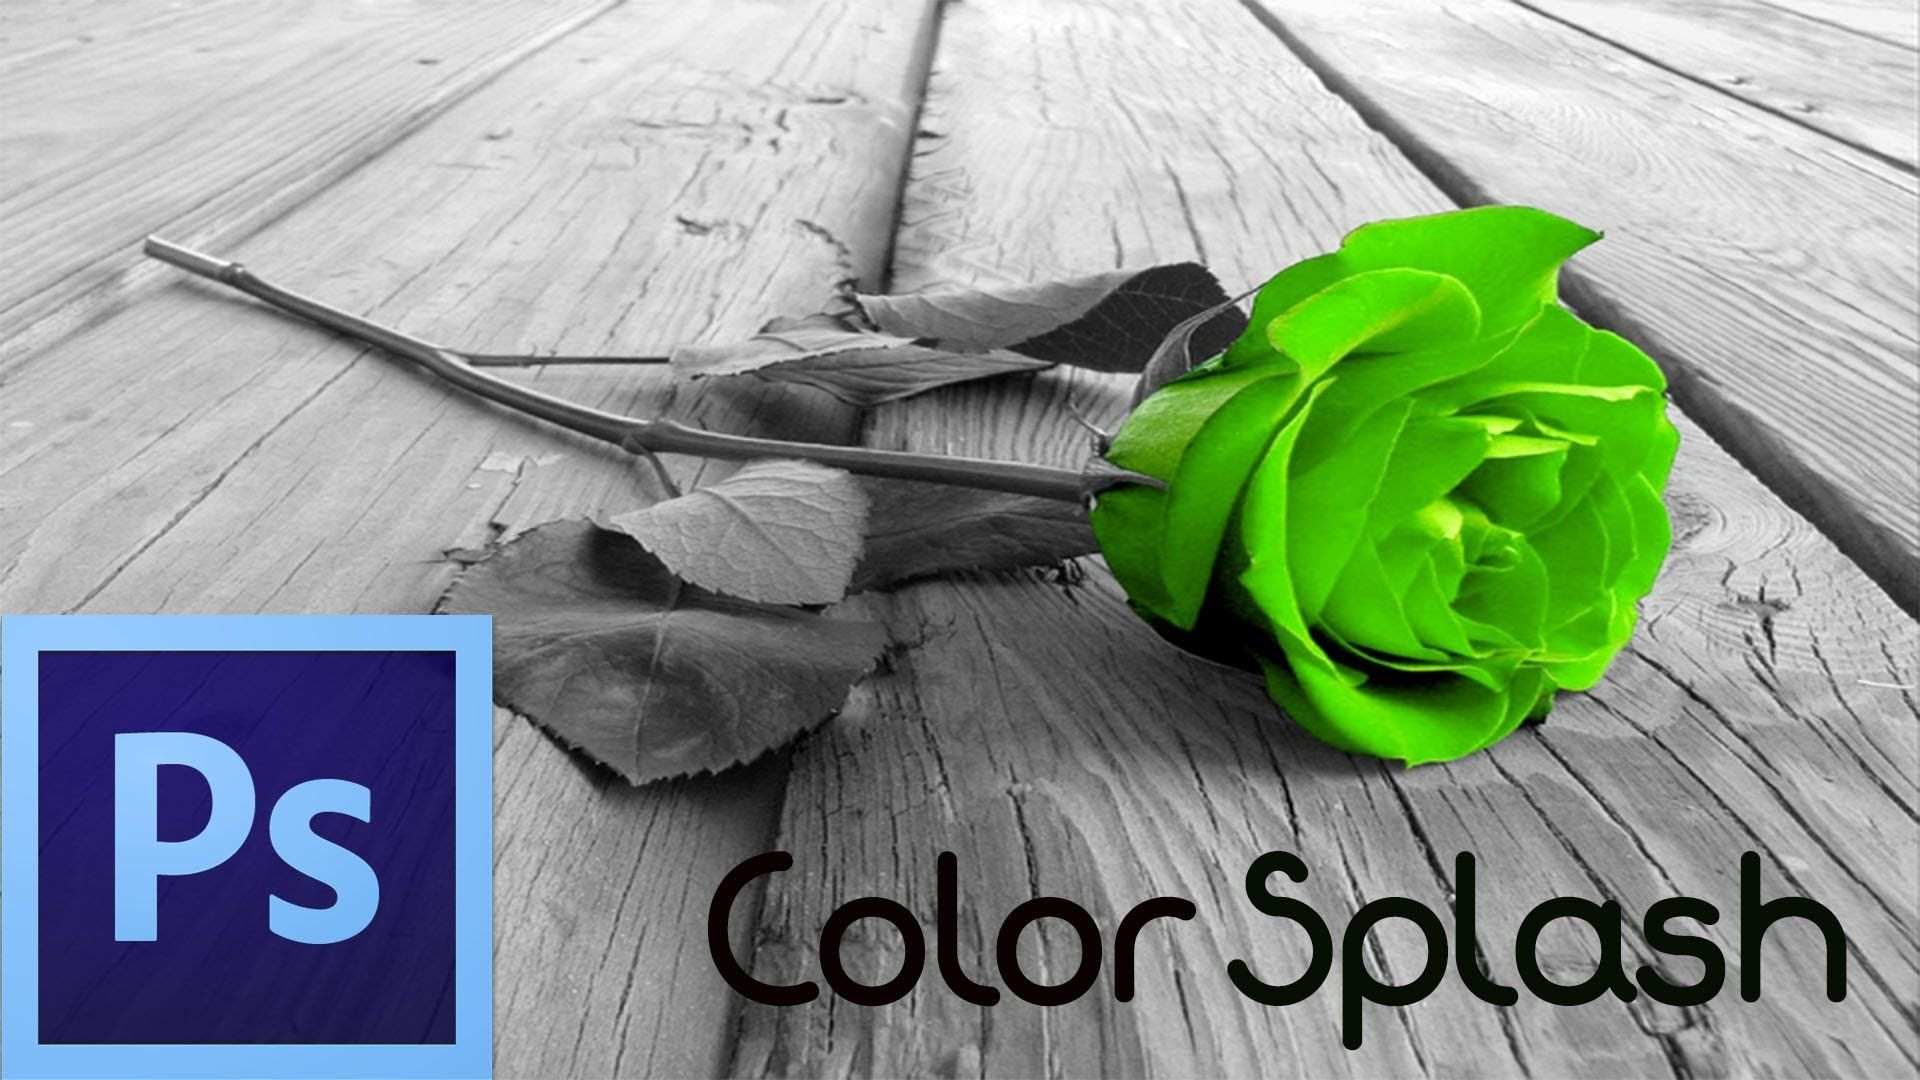 Photoshop cs6 tutorial color splash effect for beginners photoshop cs6 tutorial color splash effect for beginners baditri Choice Image